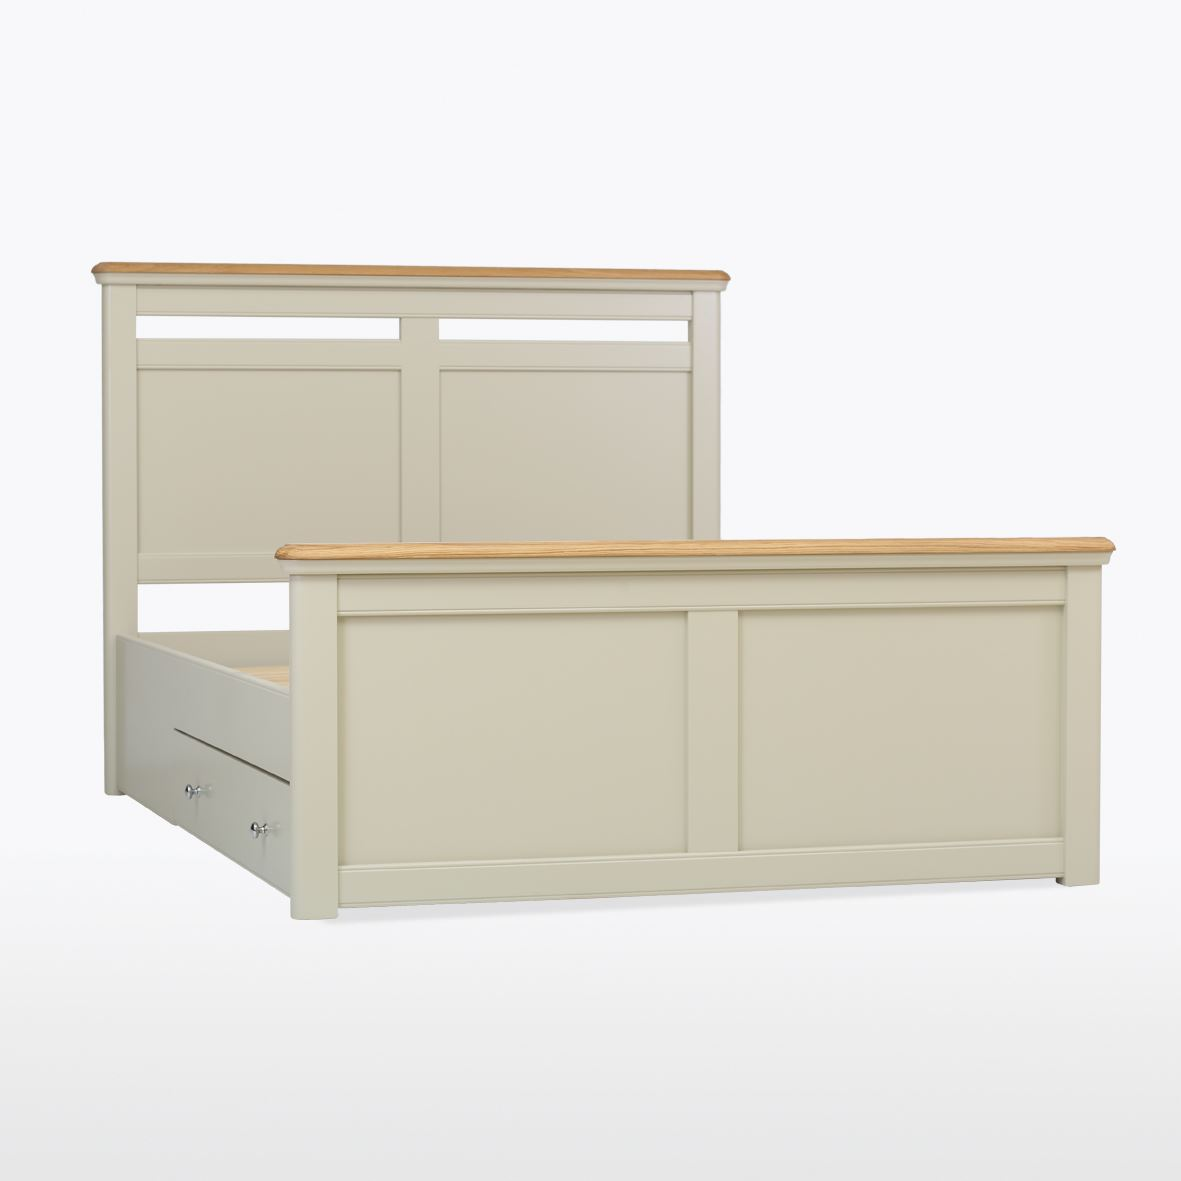 CROMWELL - Bedstead with Storage